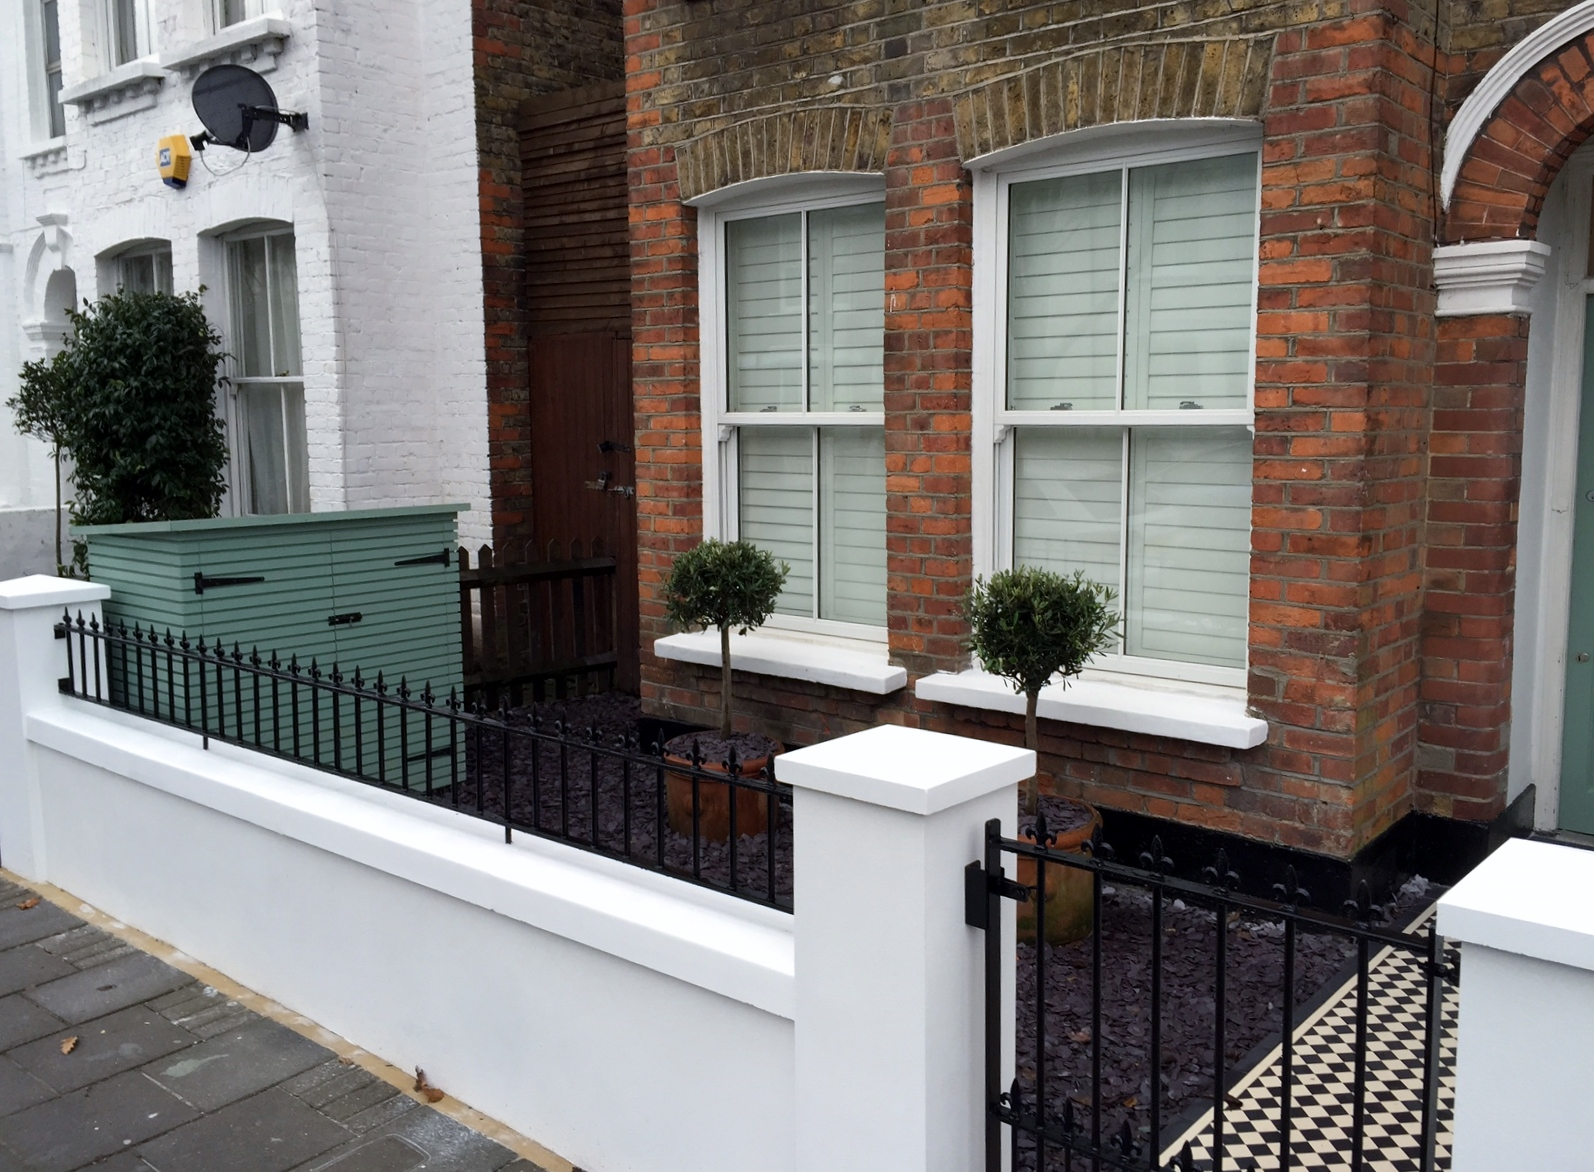 unique front garden design victorian terrace wall with railings